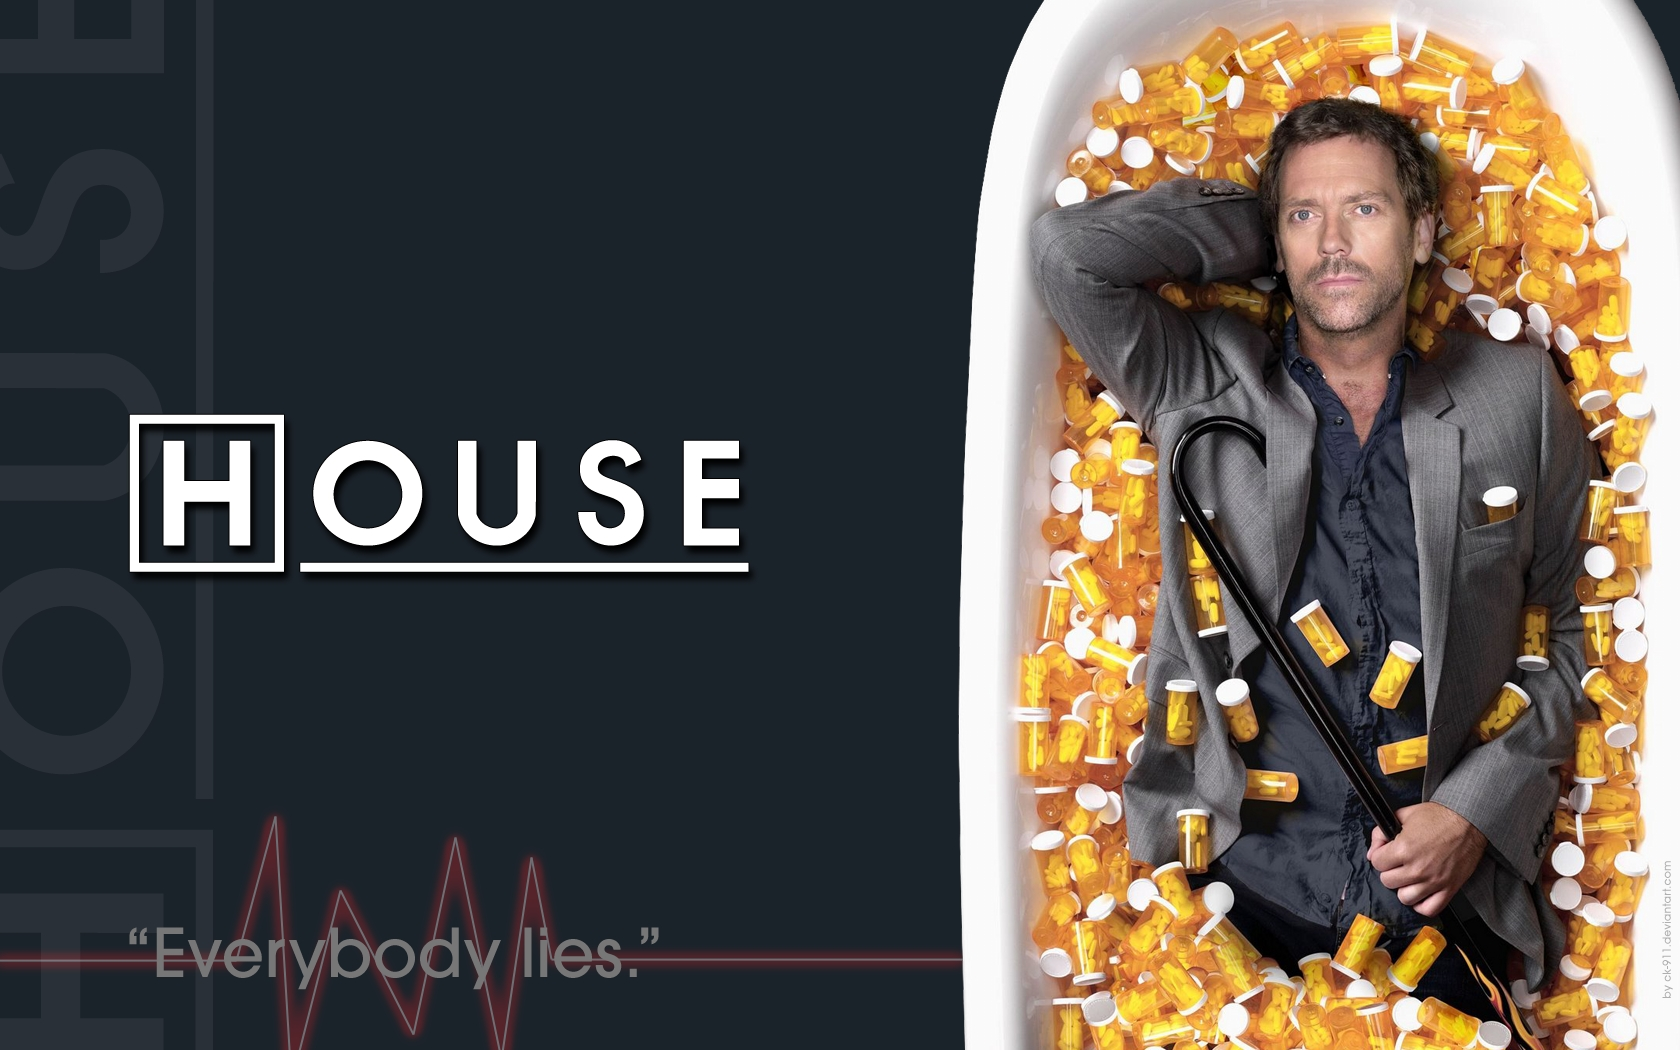 Televisieprogramma - House  - Sons Of Anarchy - Hugh Laurie - Dr. Gregory House Achtergrond